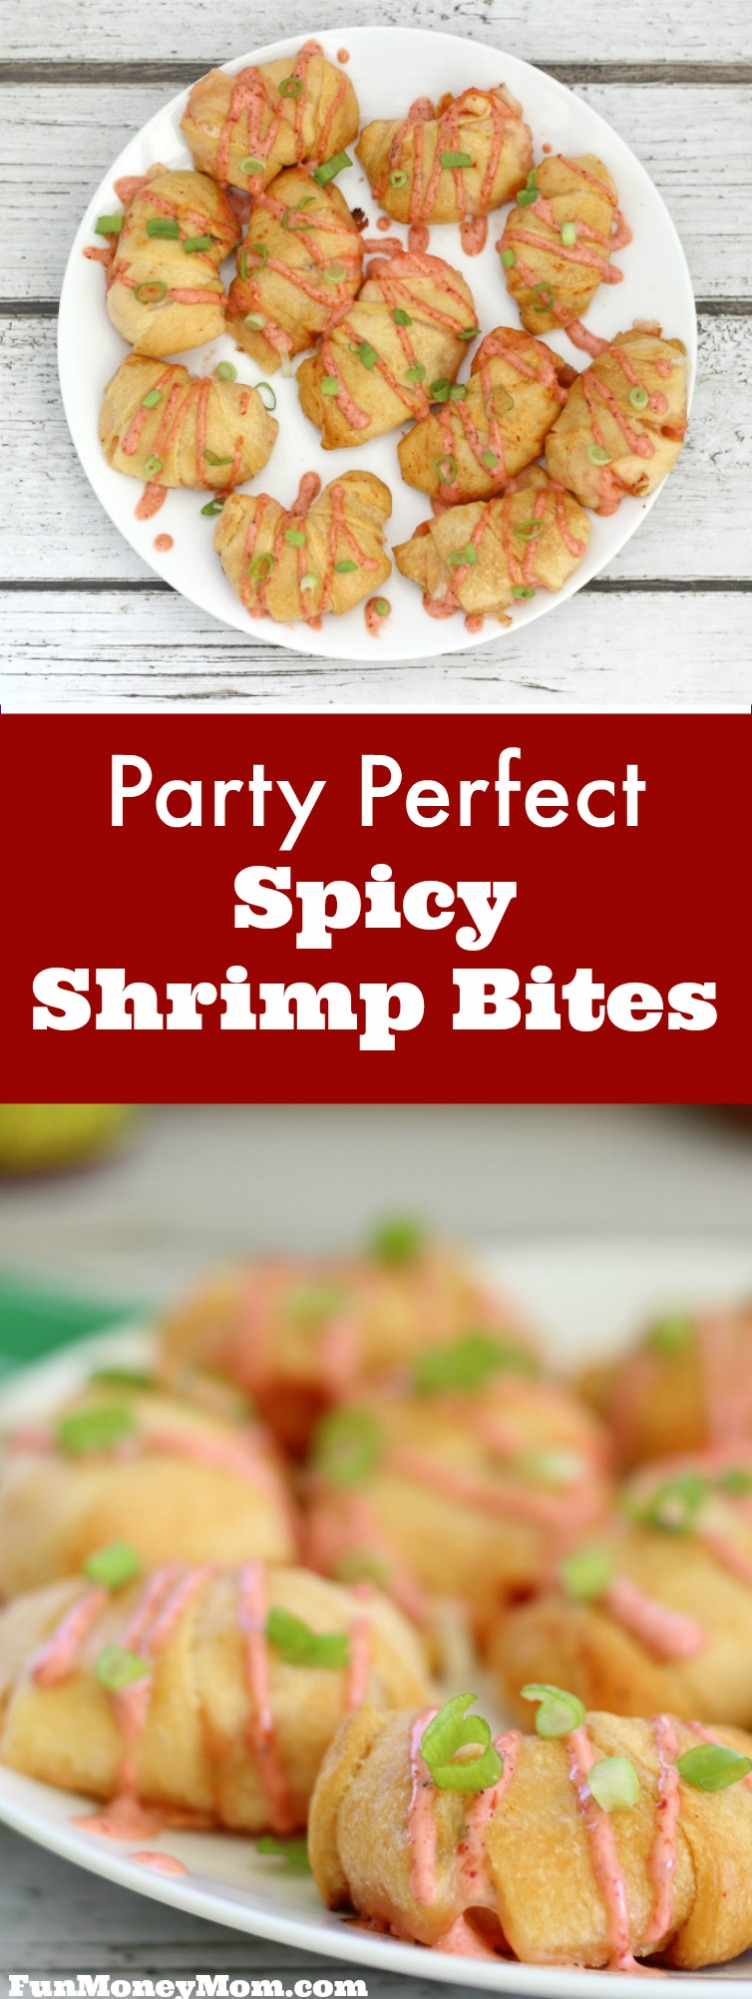 These delicious Shrimp Bites make the perfect finger food for your next party. Just spicy enough for those that like a little heat in their appetizers, this recipe is a crowd pleaser.